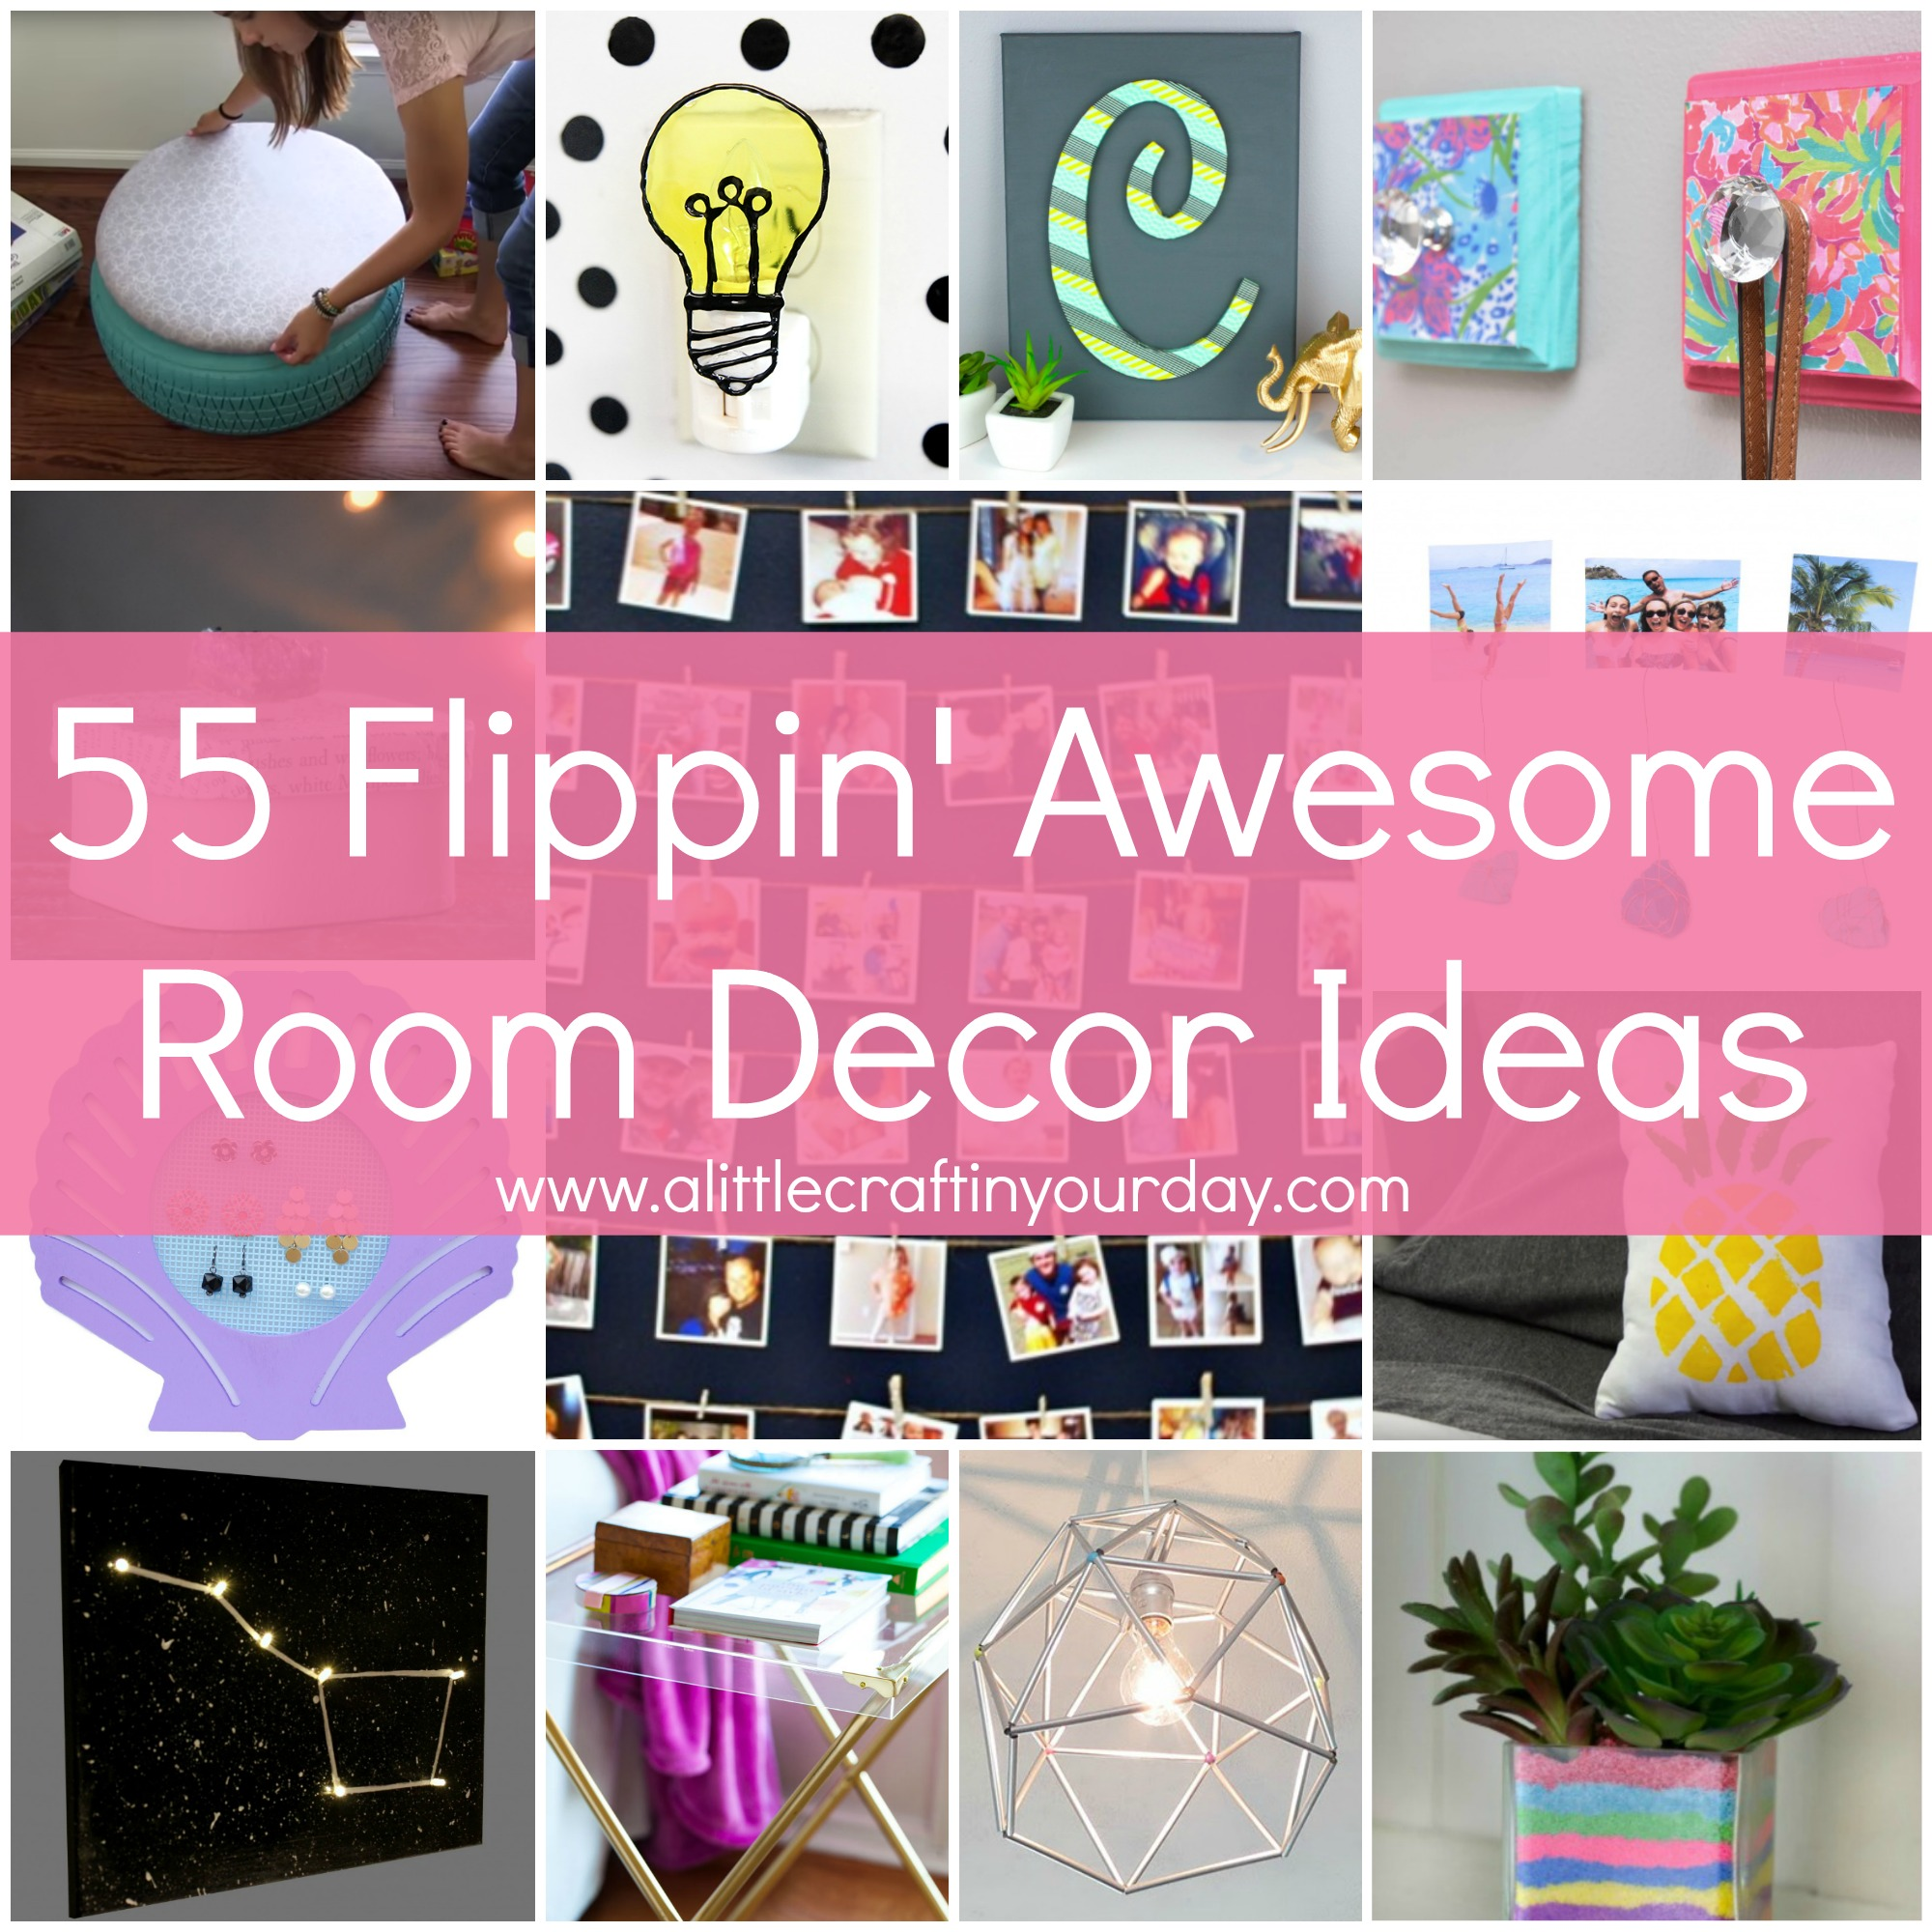 55 Flippin\' Awesome Room Decor Ideas! - A Little Craft In Your Day